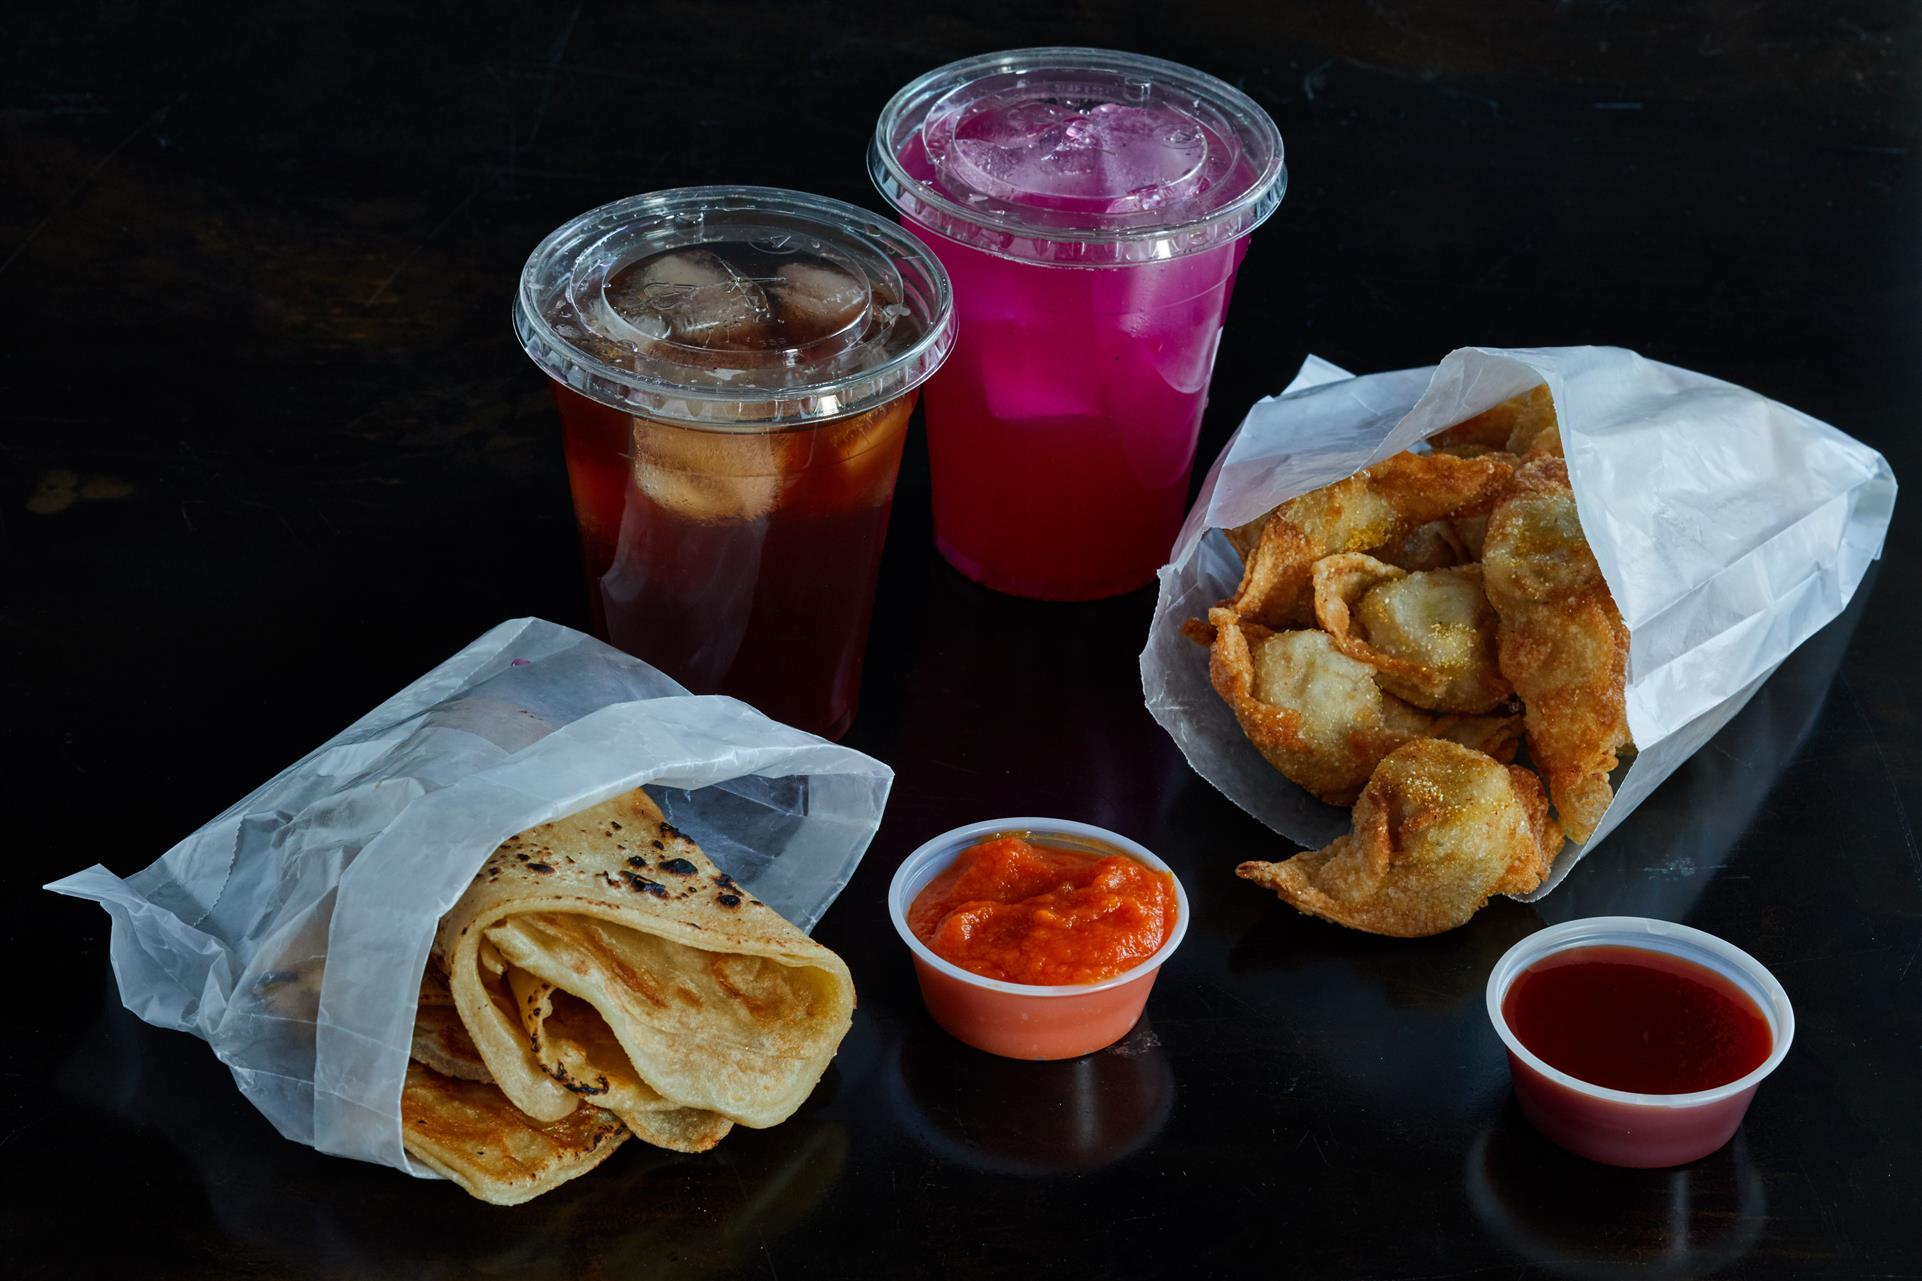 NANA'S BREAD with Red curry carrot dip, CRAB POCKETS with sweet & sticky sauce, DRAGONFRUIT LEMONADE and ICED TEA